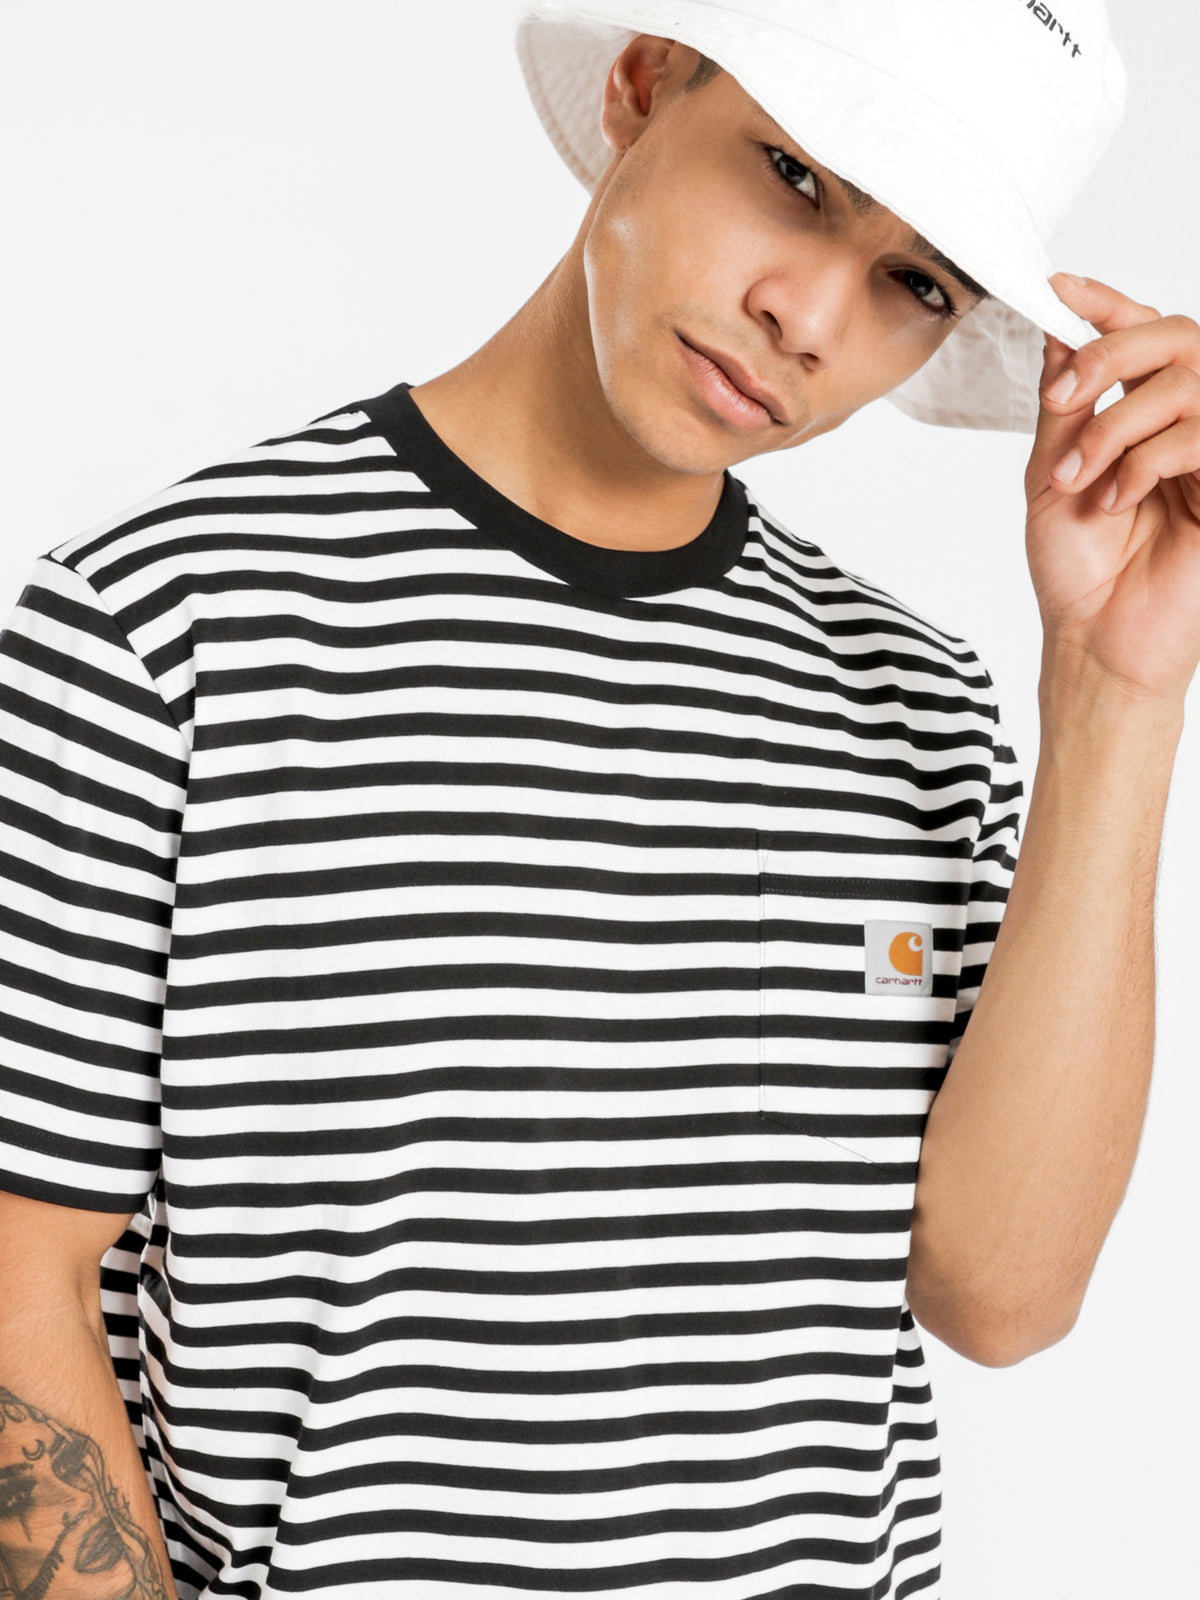 Haldon Pocket Short Sleeve T-Shirt in Black & White Stripe